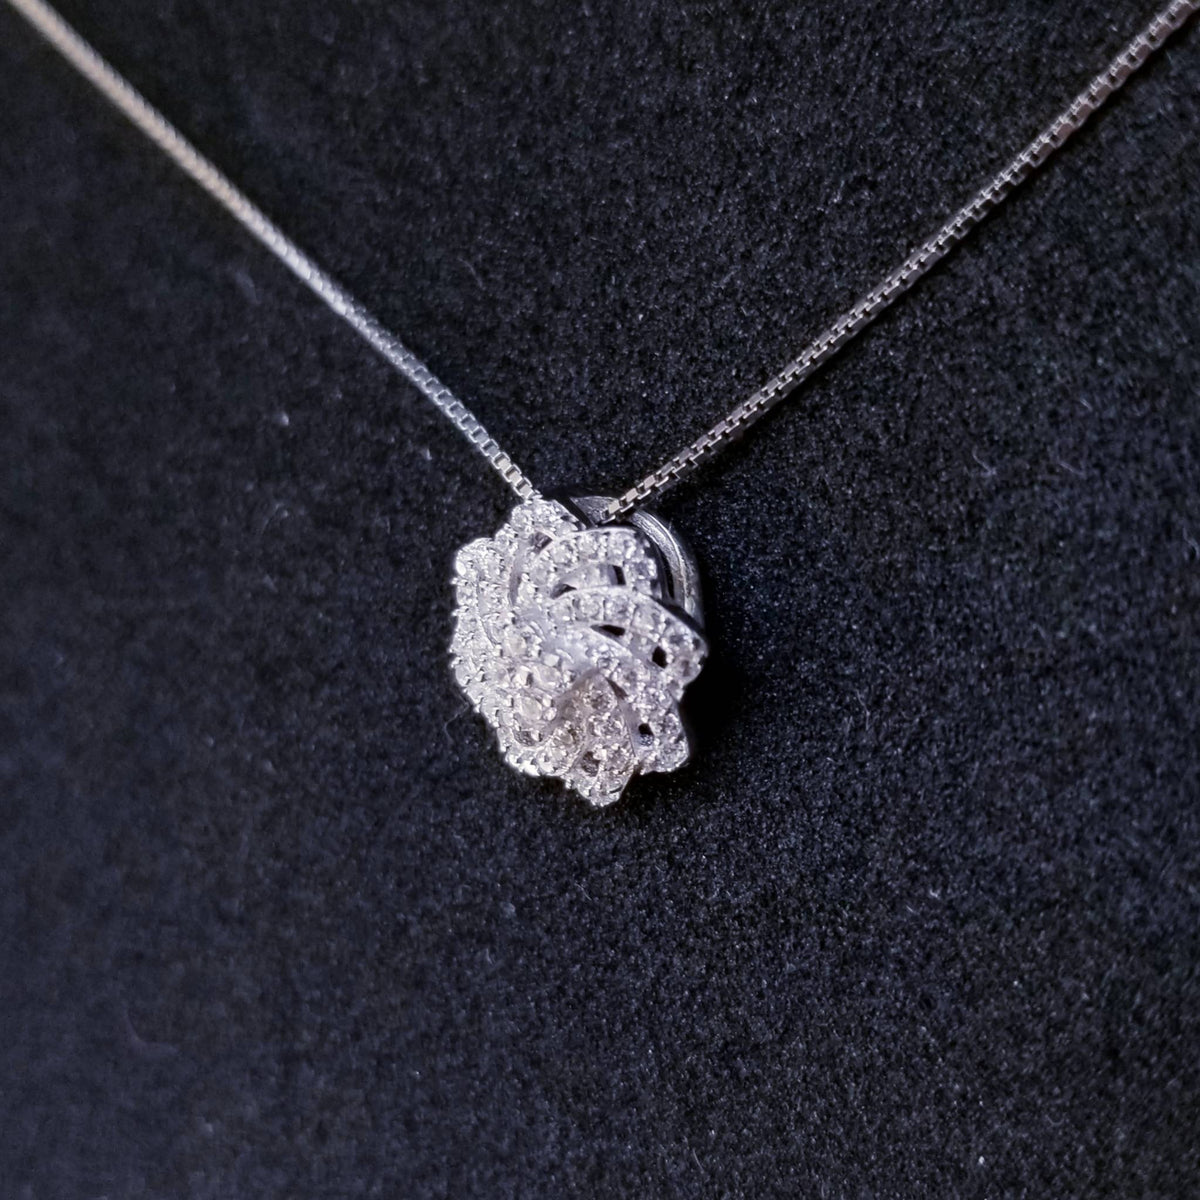 New 14k White Gold On 925 Sterling Silver Small Swirl Flower CZ Stones Pendant Free Chain